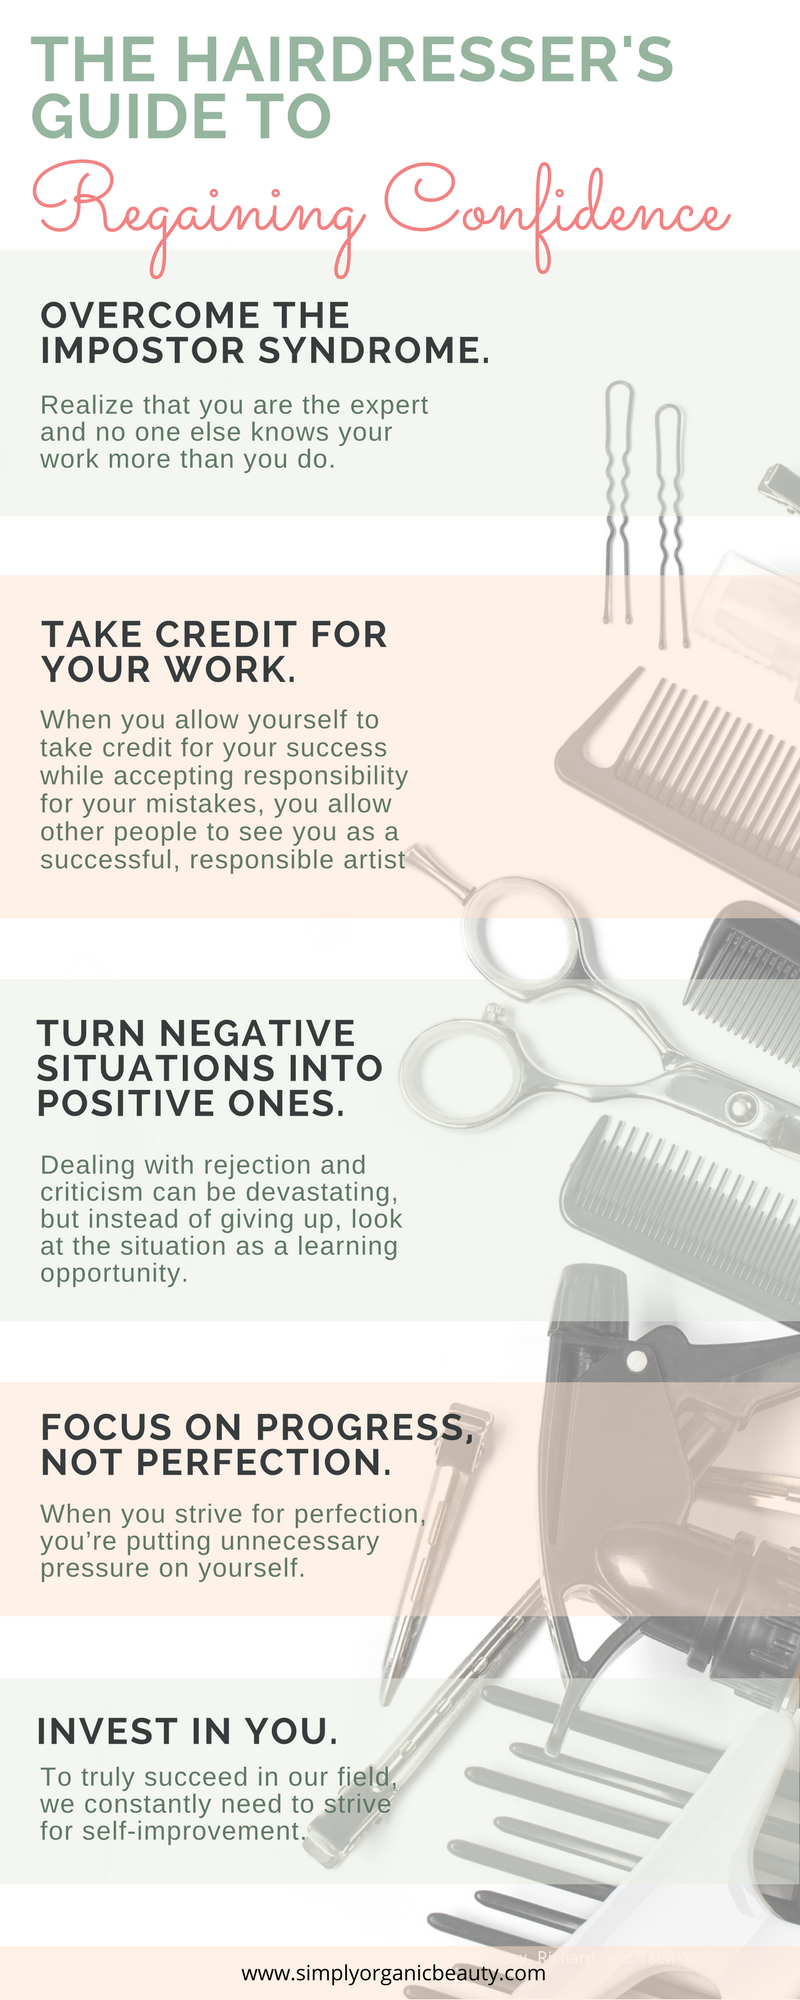 Hairstylist Resume The Hair Stylist's Guide To Regaining Confidence  Confidence